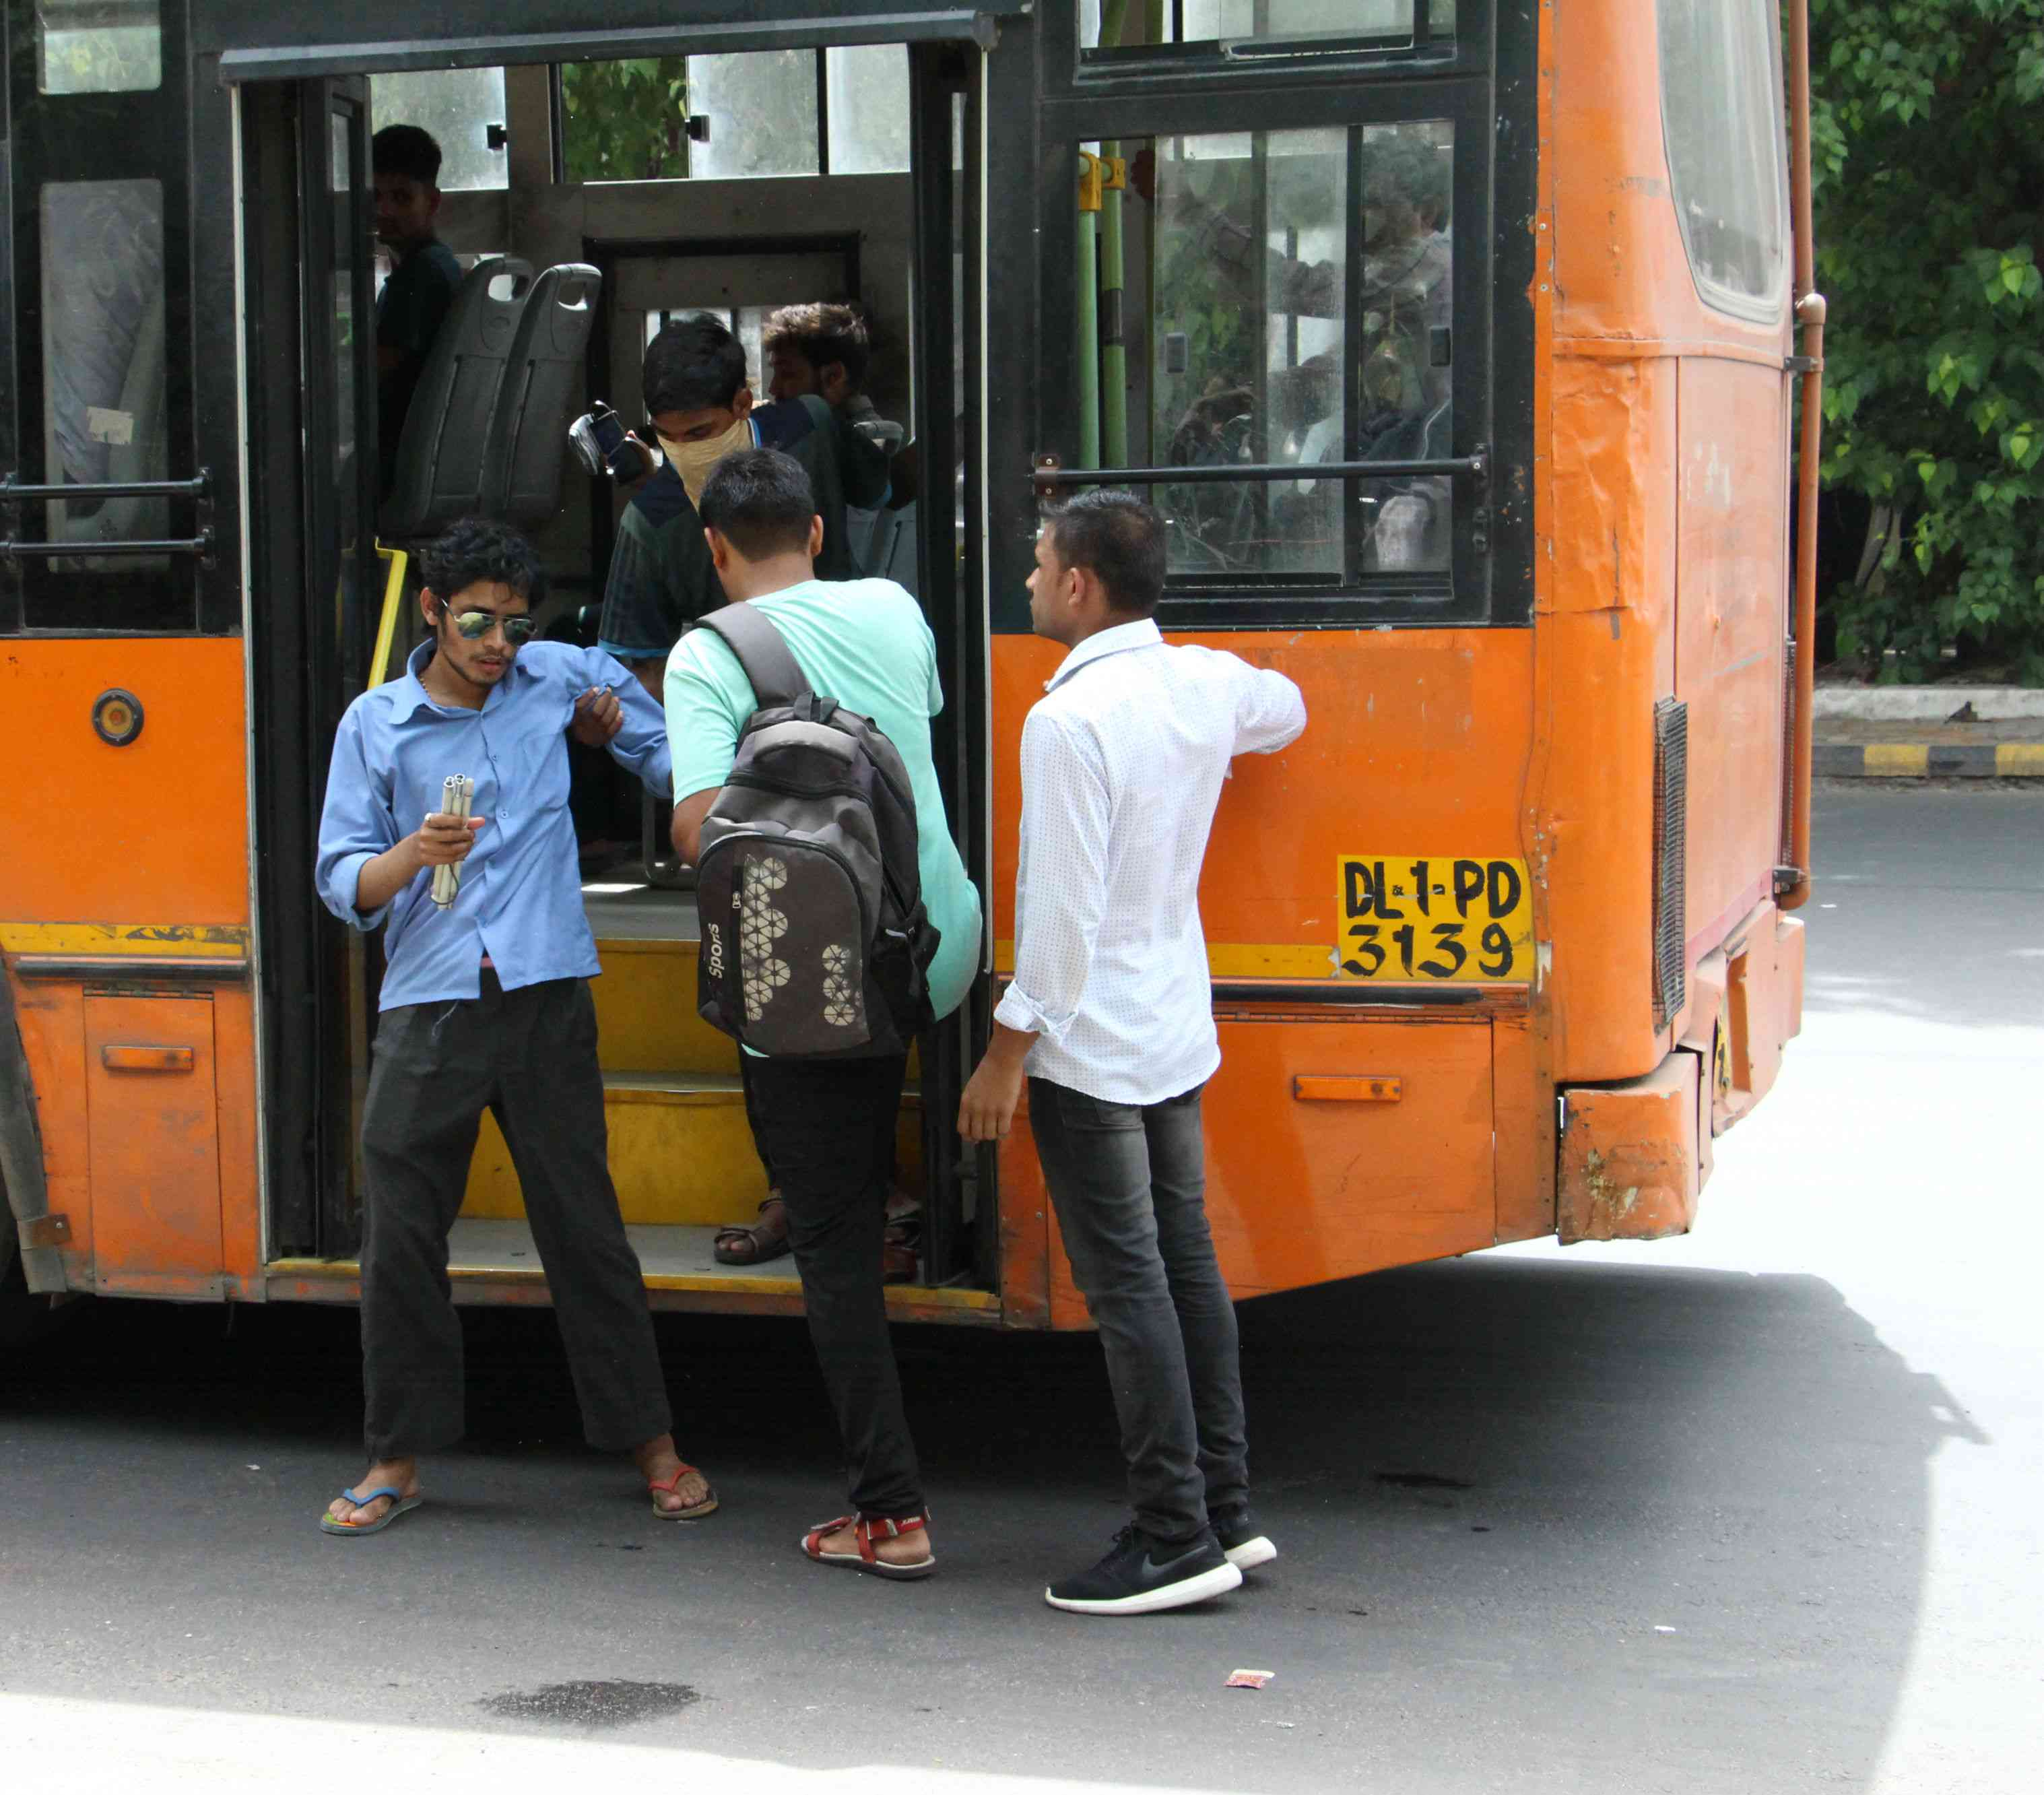 A man helps a visually impaired passenger to alight from a standard-floor bus in New Delhi.